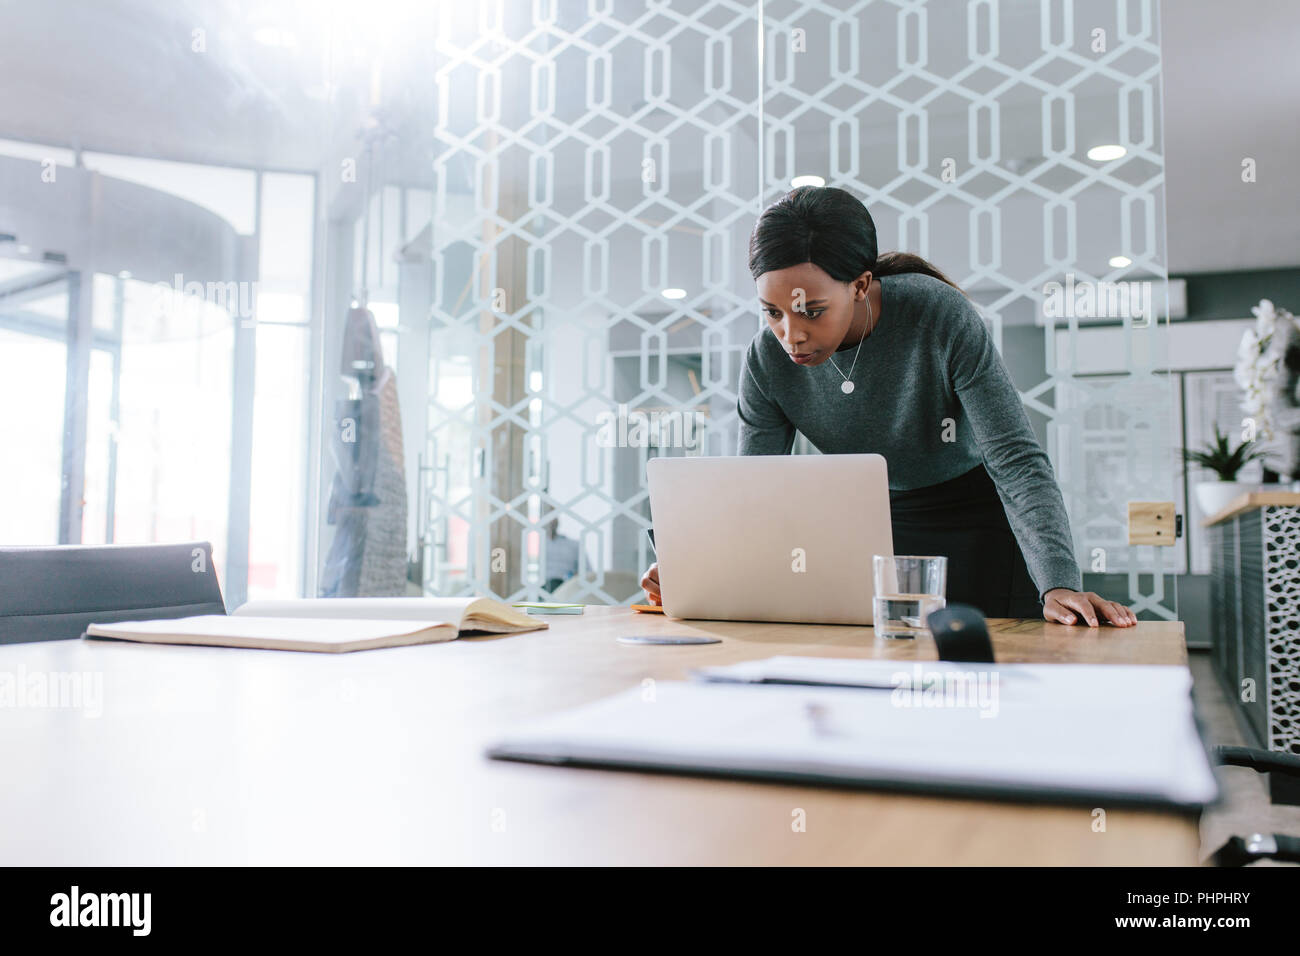 African woman standing by conference table and looking at her laptop. Business woman working on laptop computer in boardroom. - Stock Image